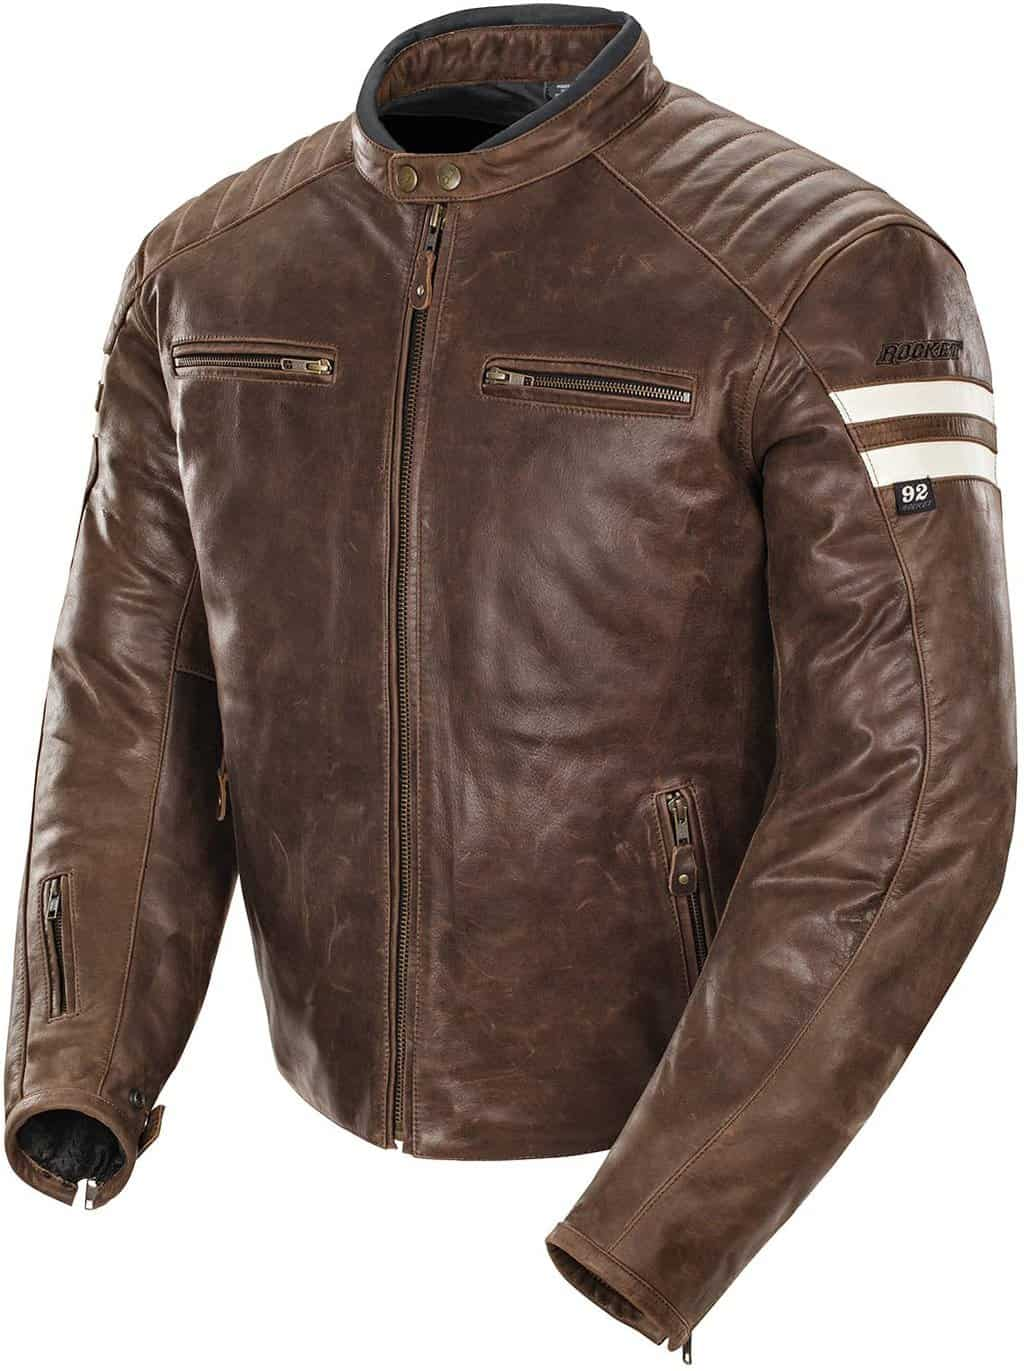 Joe-Rocket-1326-2304-Classic-'92-–-Best-Leather-Motorcycle-Jacket-with-Armor